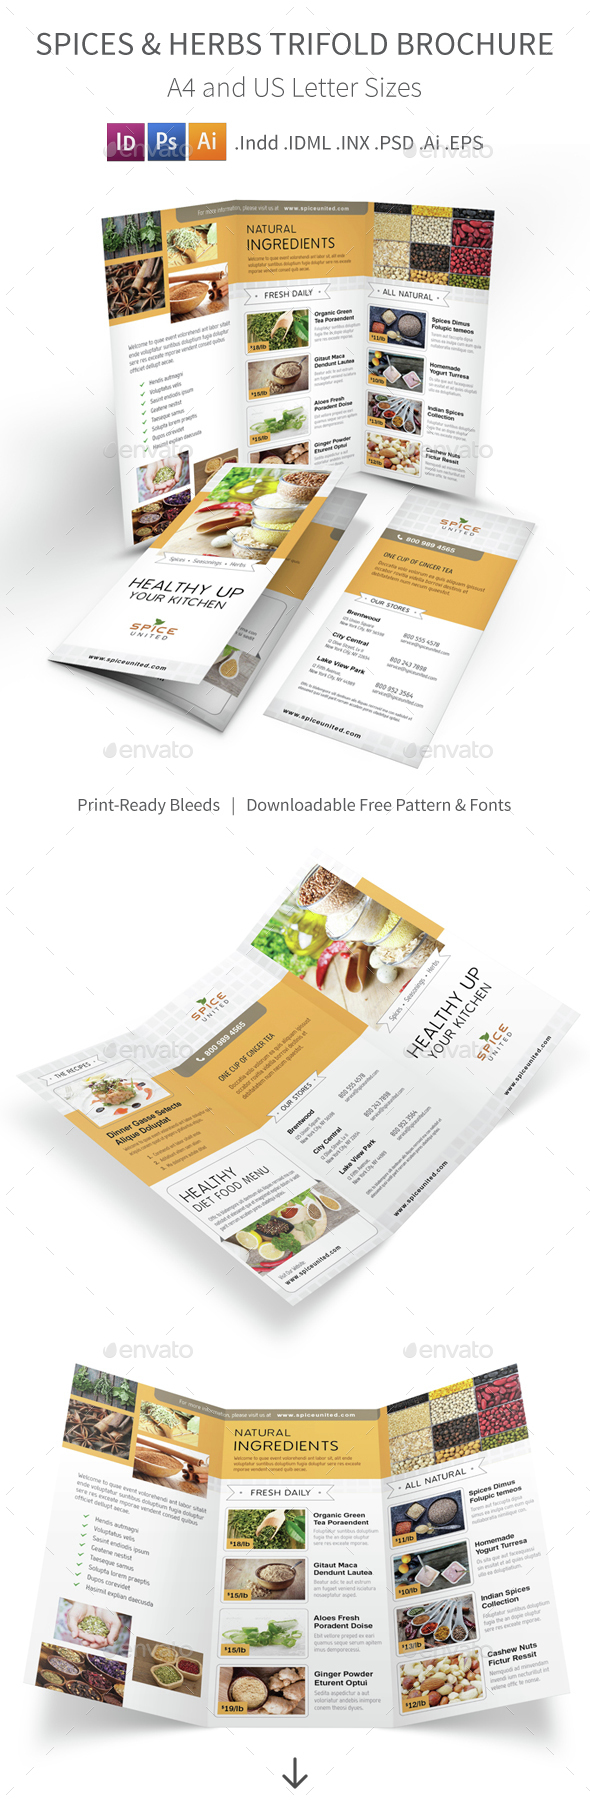 Spices & Herbs Trifold Brochure - Informational Brochures